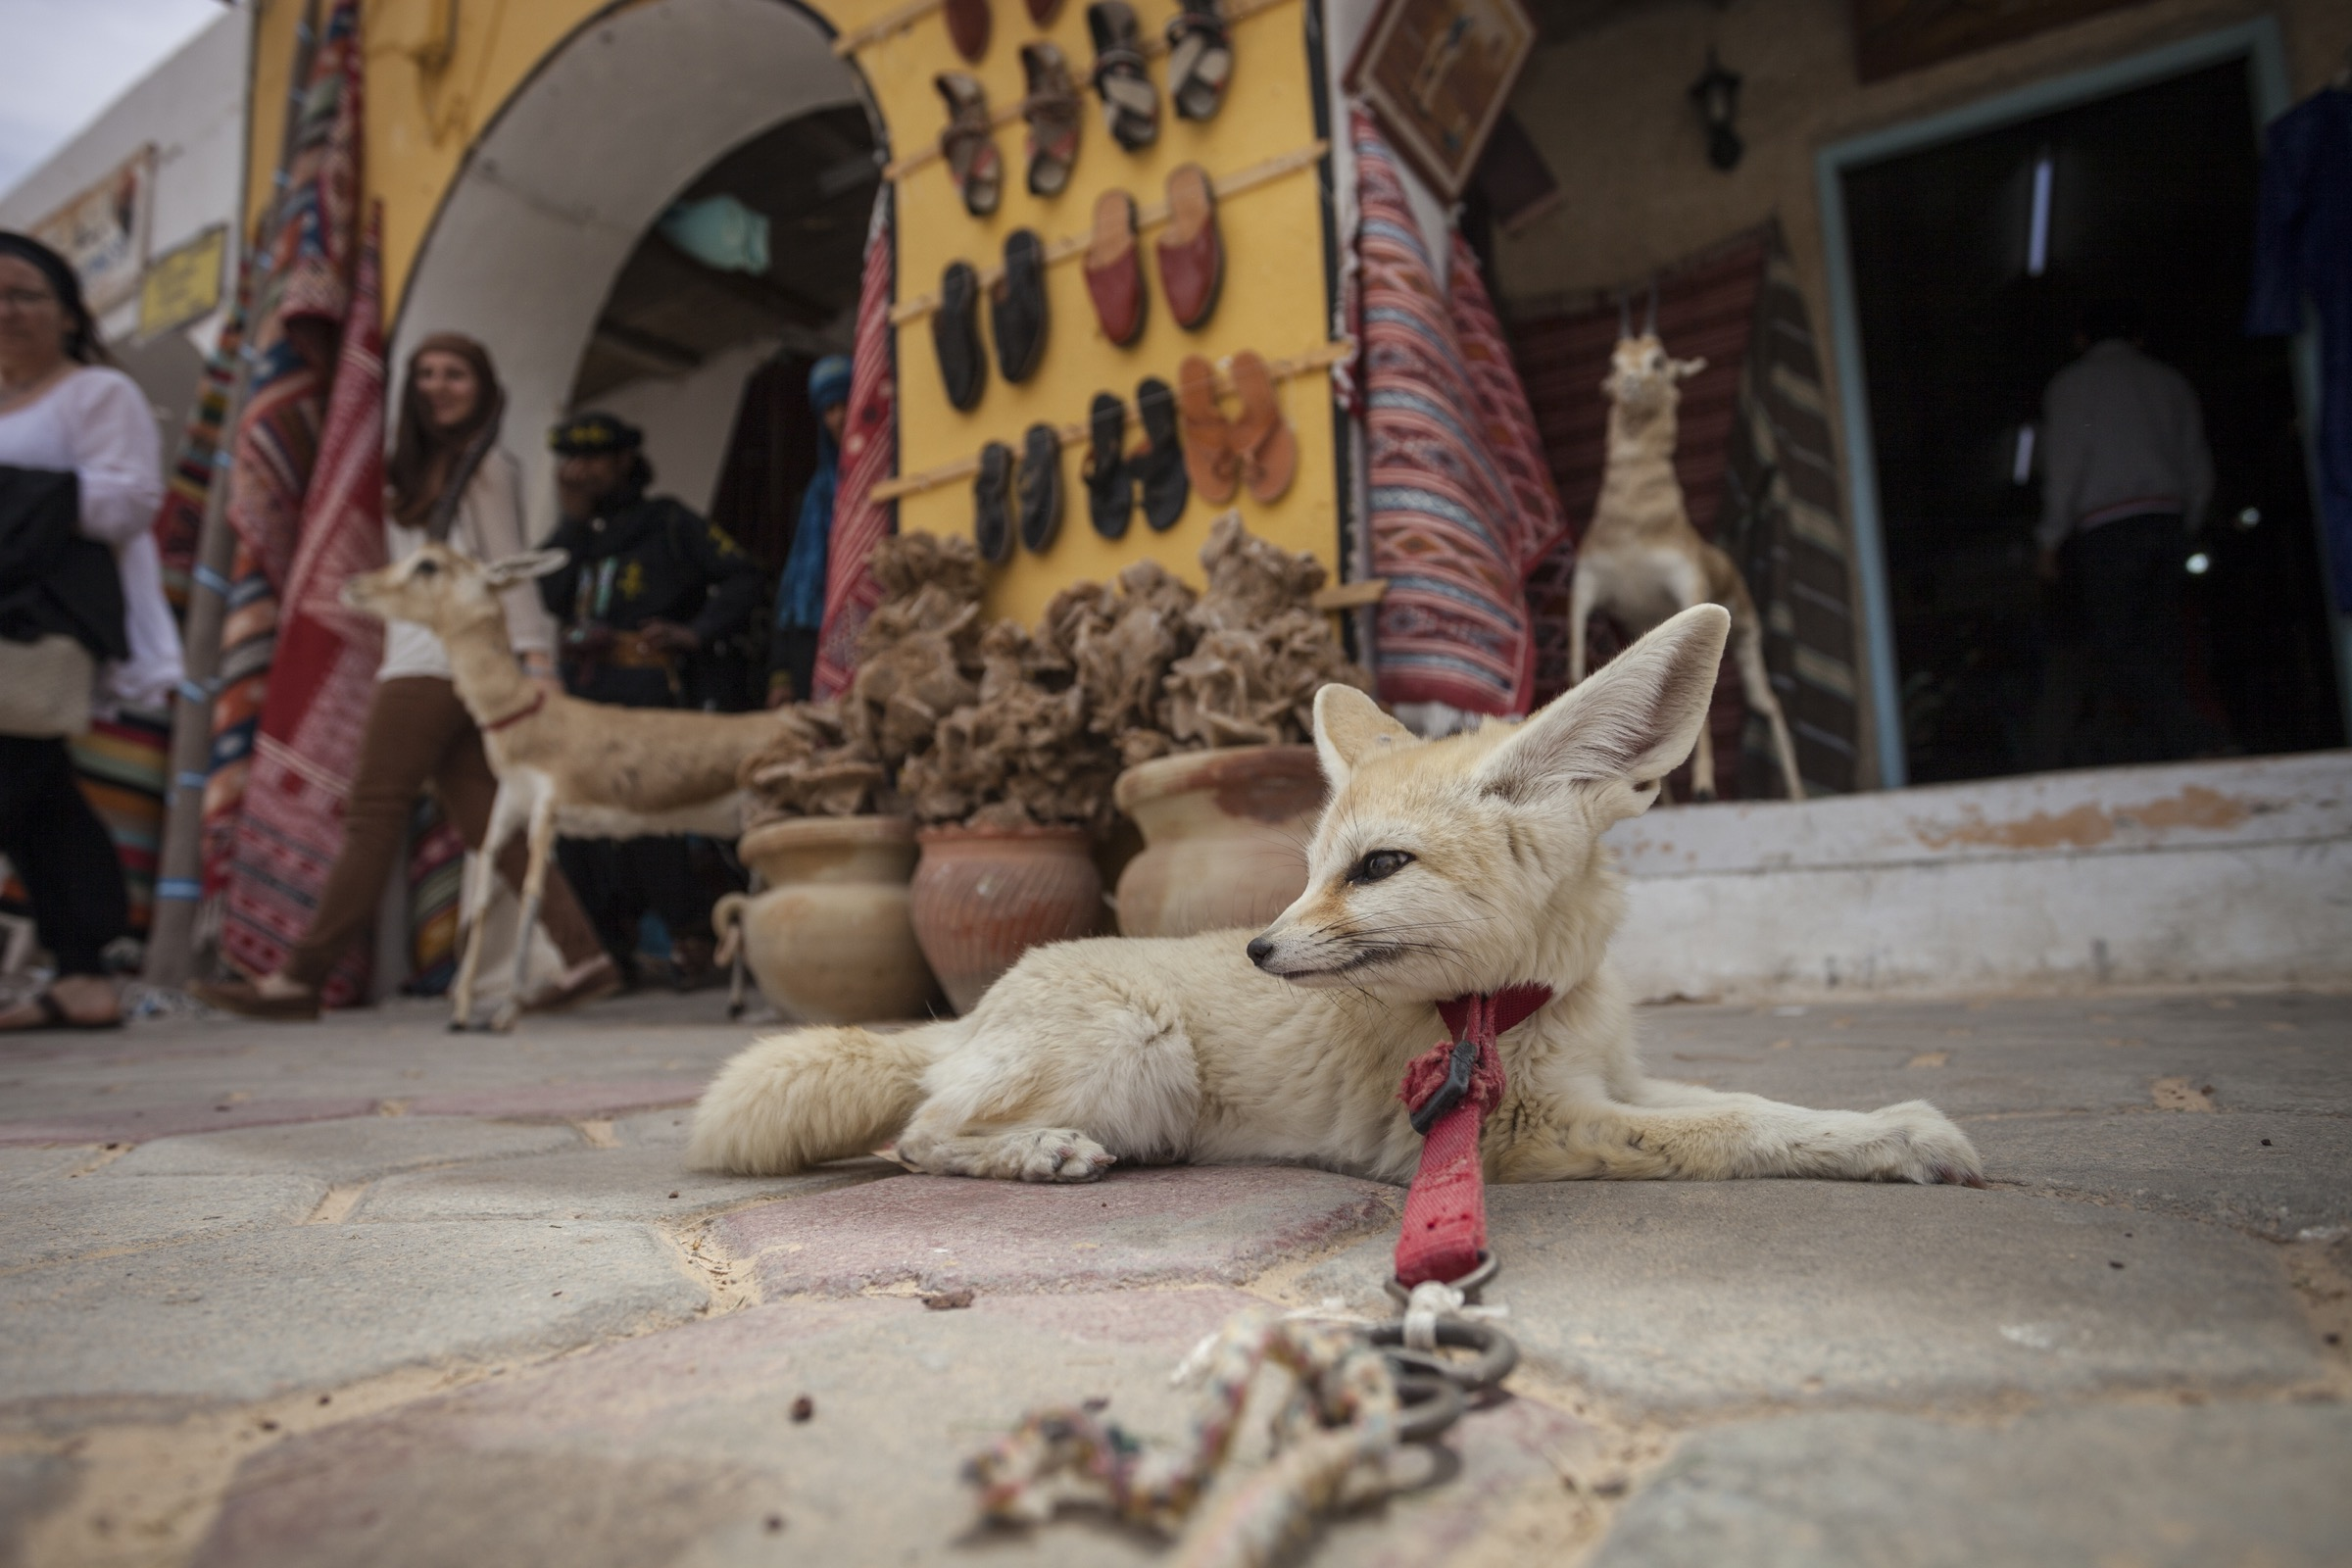 A captive fennec fox rests in front of a tourist shop in Douz, Tunisia. Foxes used as tourist attractions often exhibit signs of stress and aggression and die prematurely.